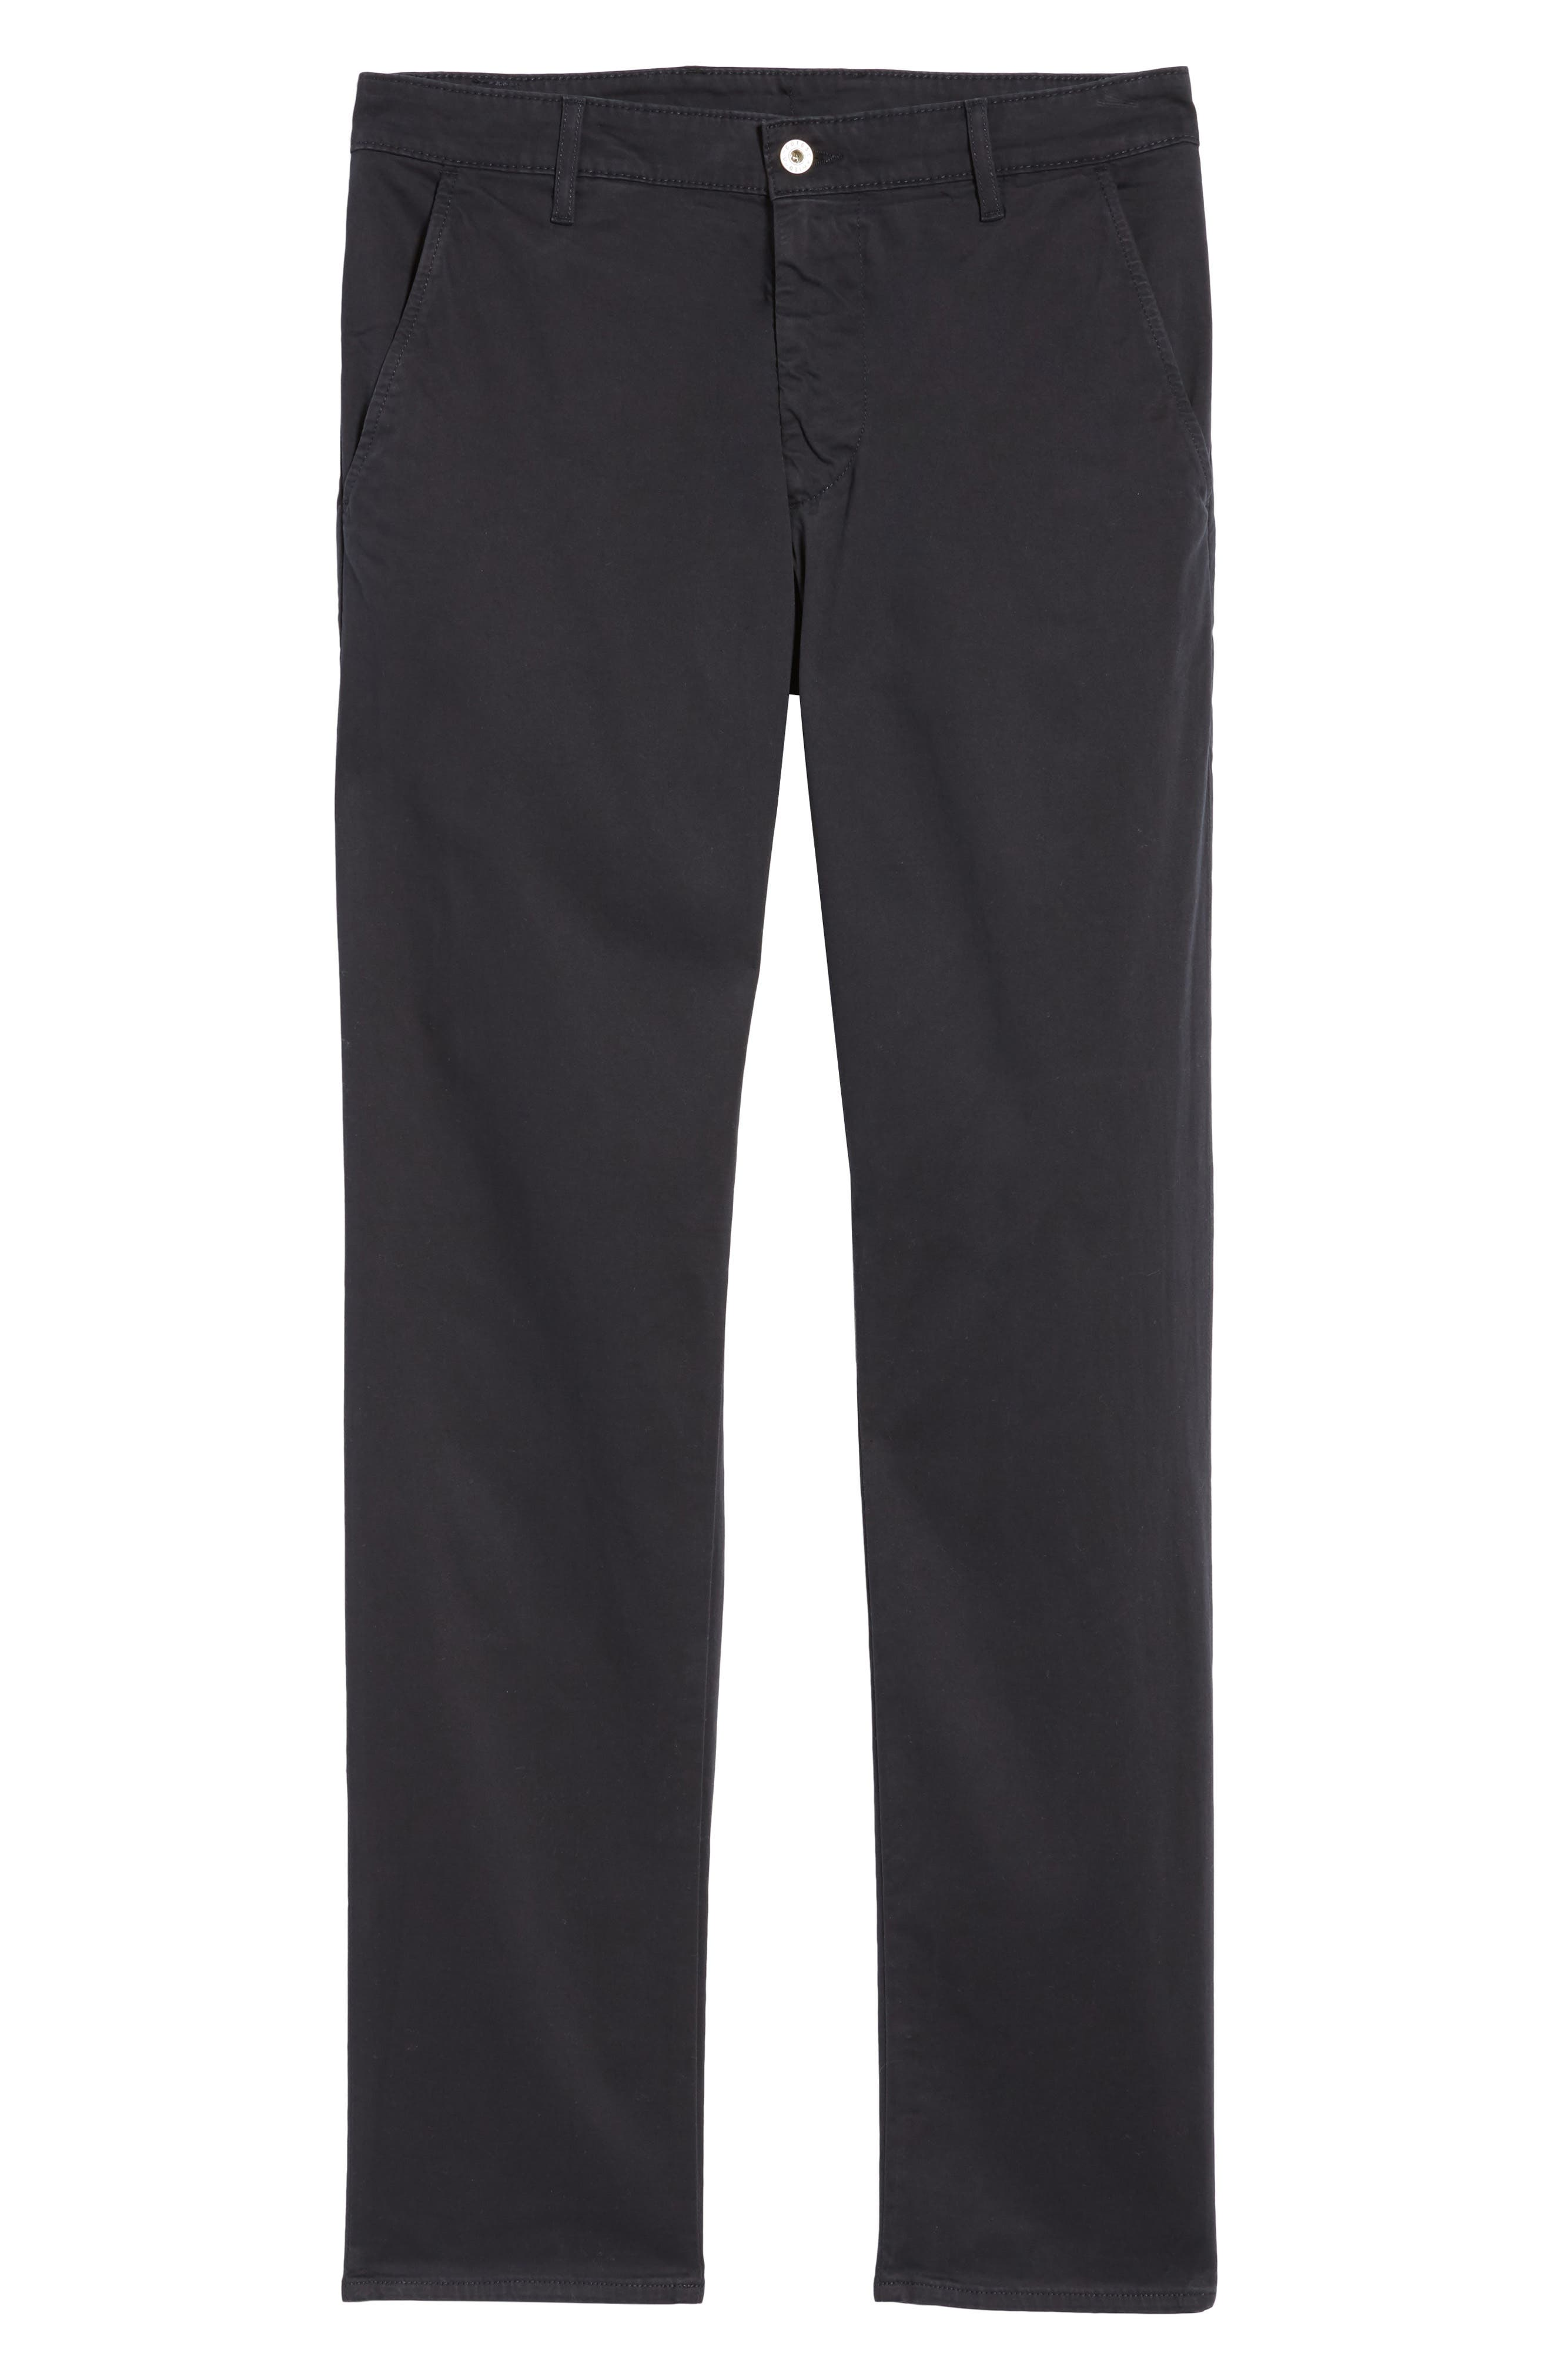 'The Lux' Tailored Straight Leg Chinos,                             Alternate thumbnail 16, color,